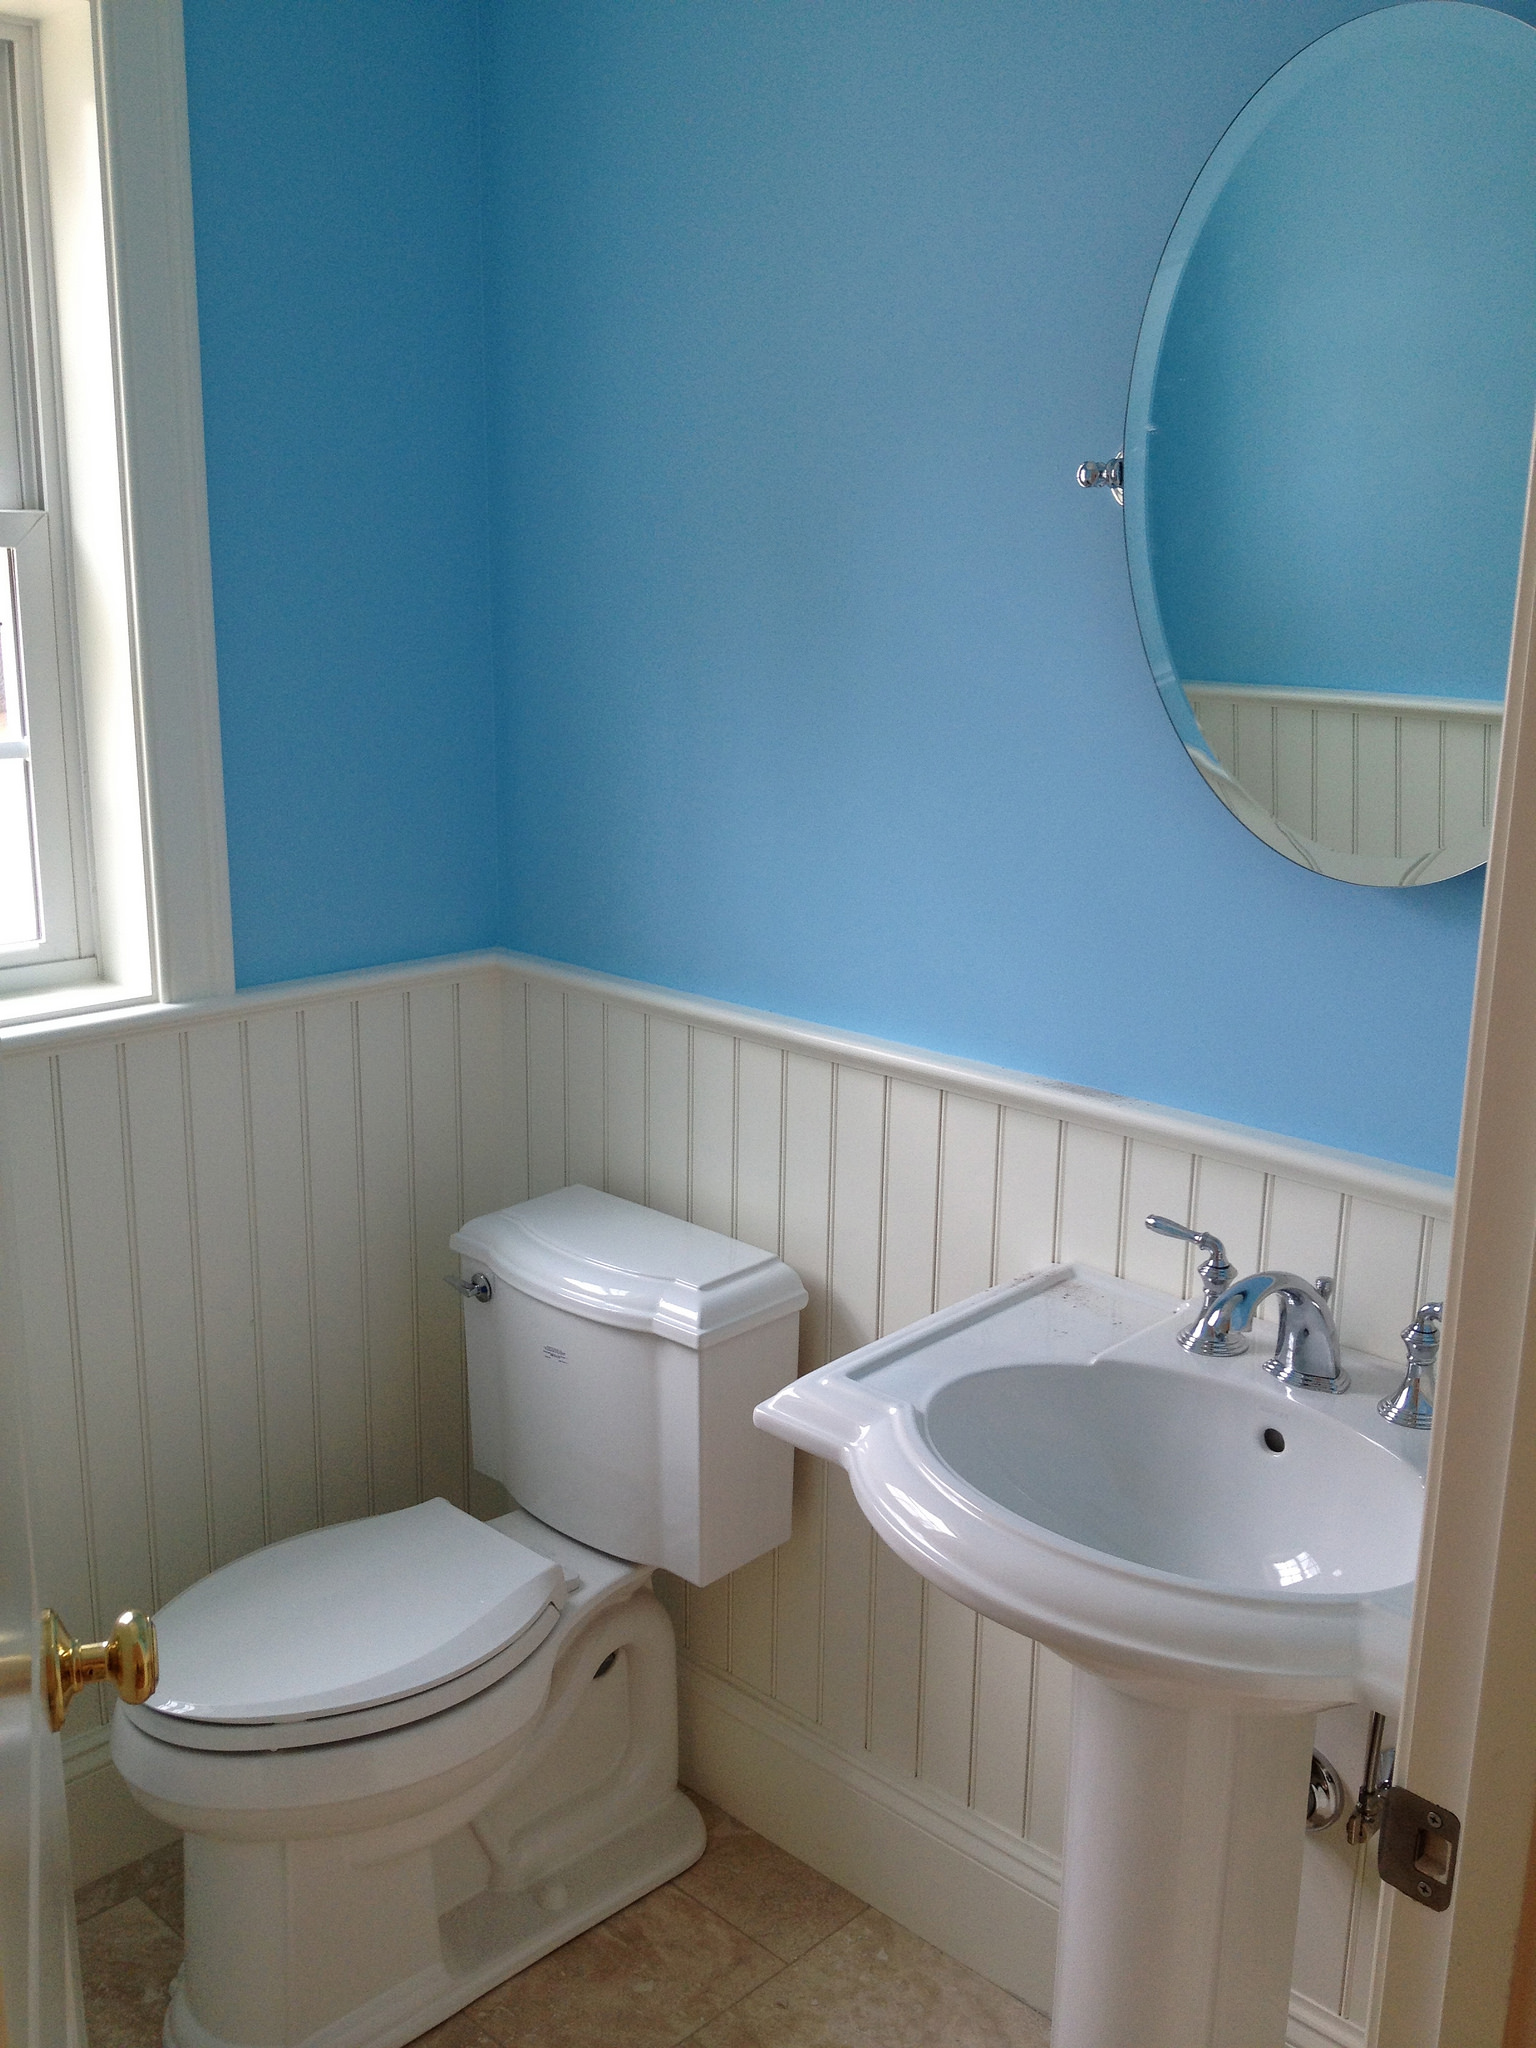 10 Small Half Bathroom Ideas To Make You Swoon